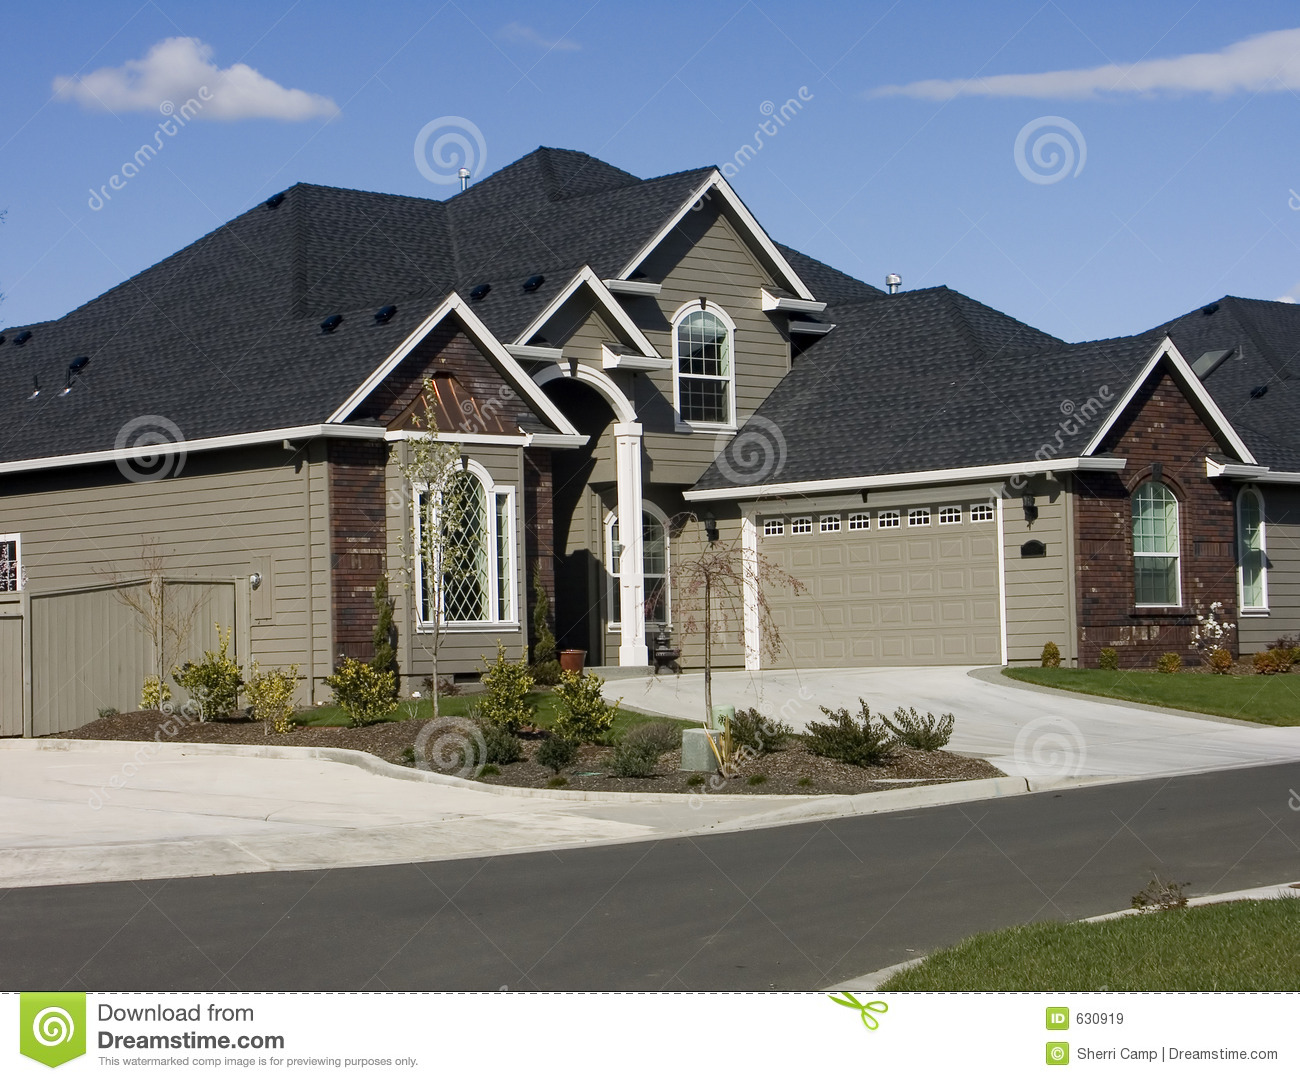 New modern american house royalty free stock images for Modern american houses